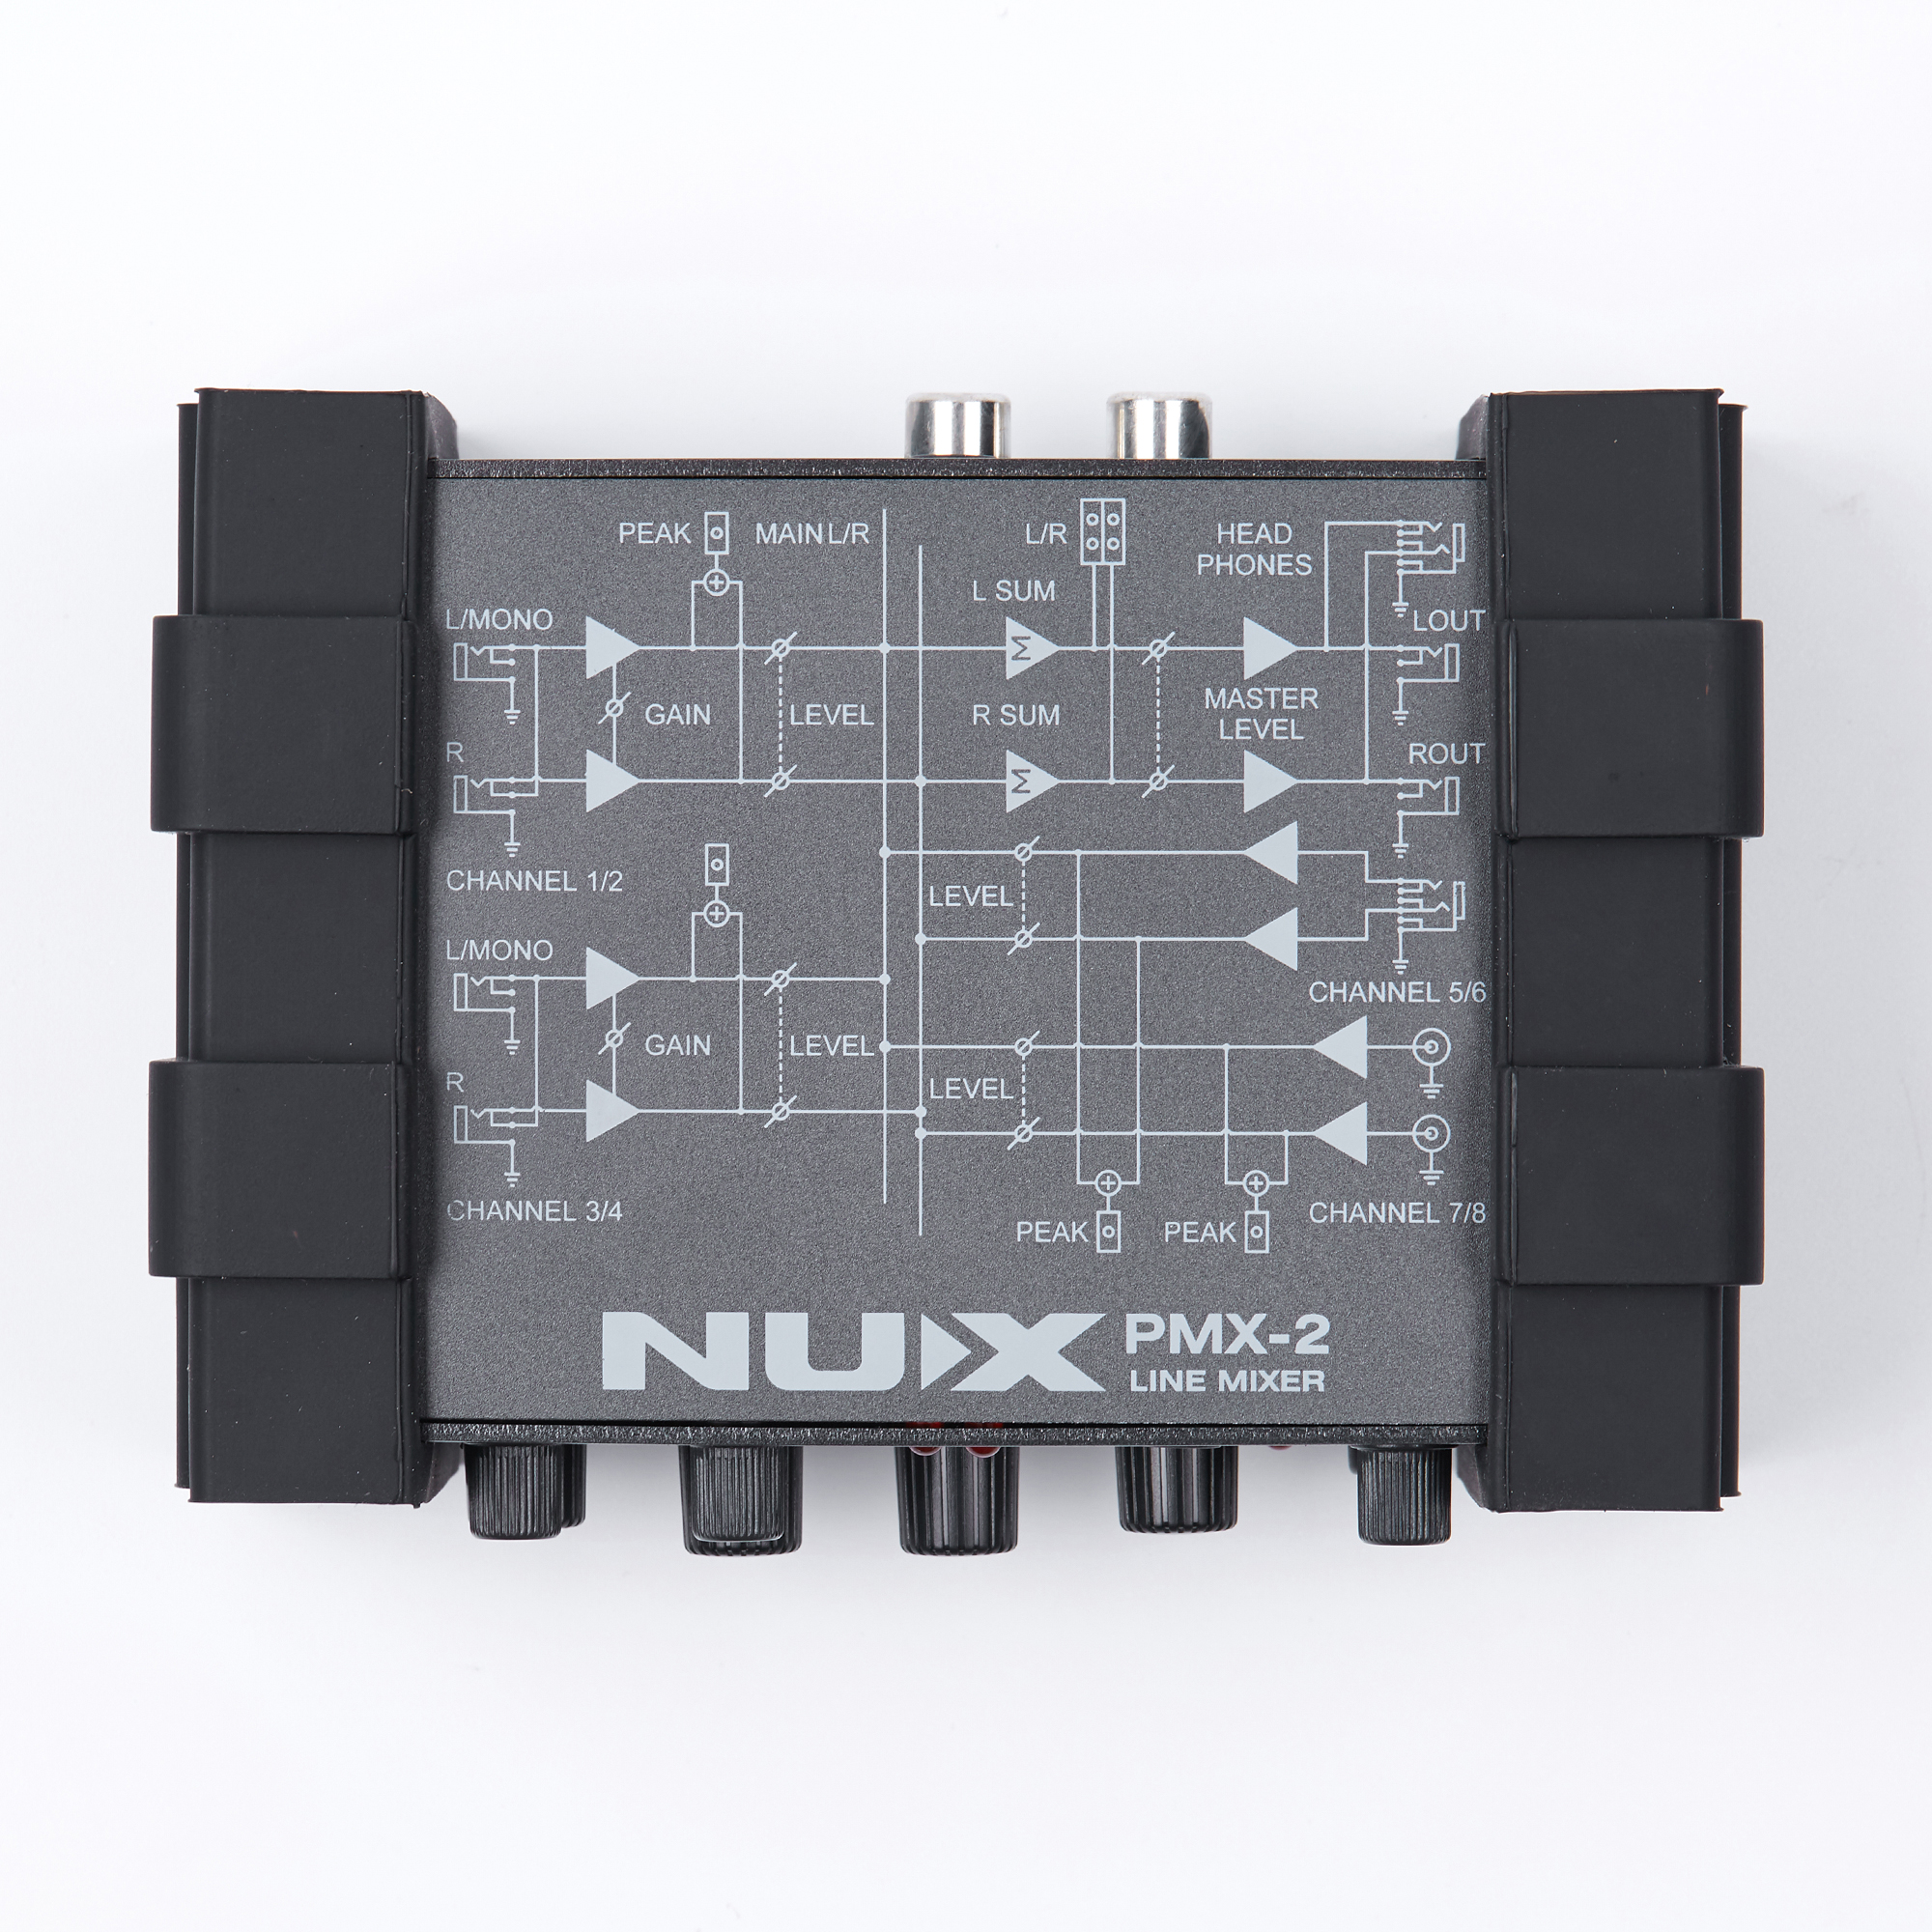 Gain Control 8 Inputs and 2 Outputs NUX PMX-2 Multi-Channel Mini Mixer 30 Musical Instruments Accessories for Guitar Bass Player щипцы для наращивания волос php pp601